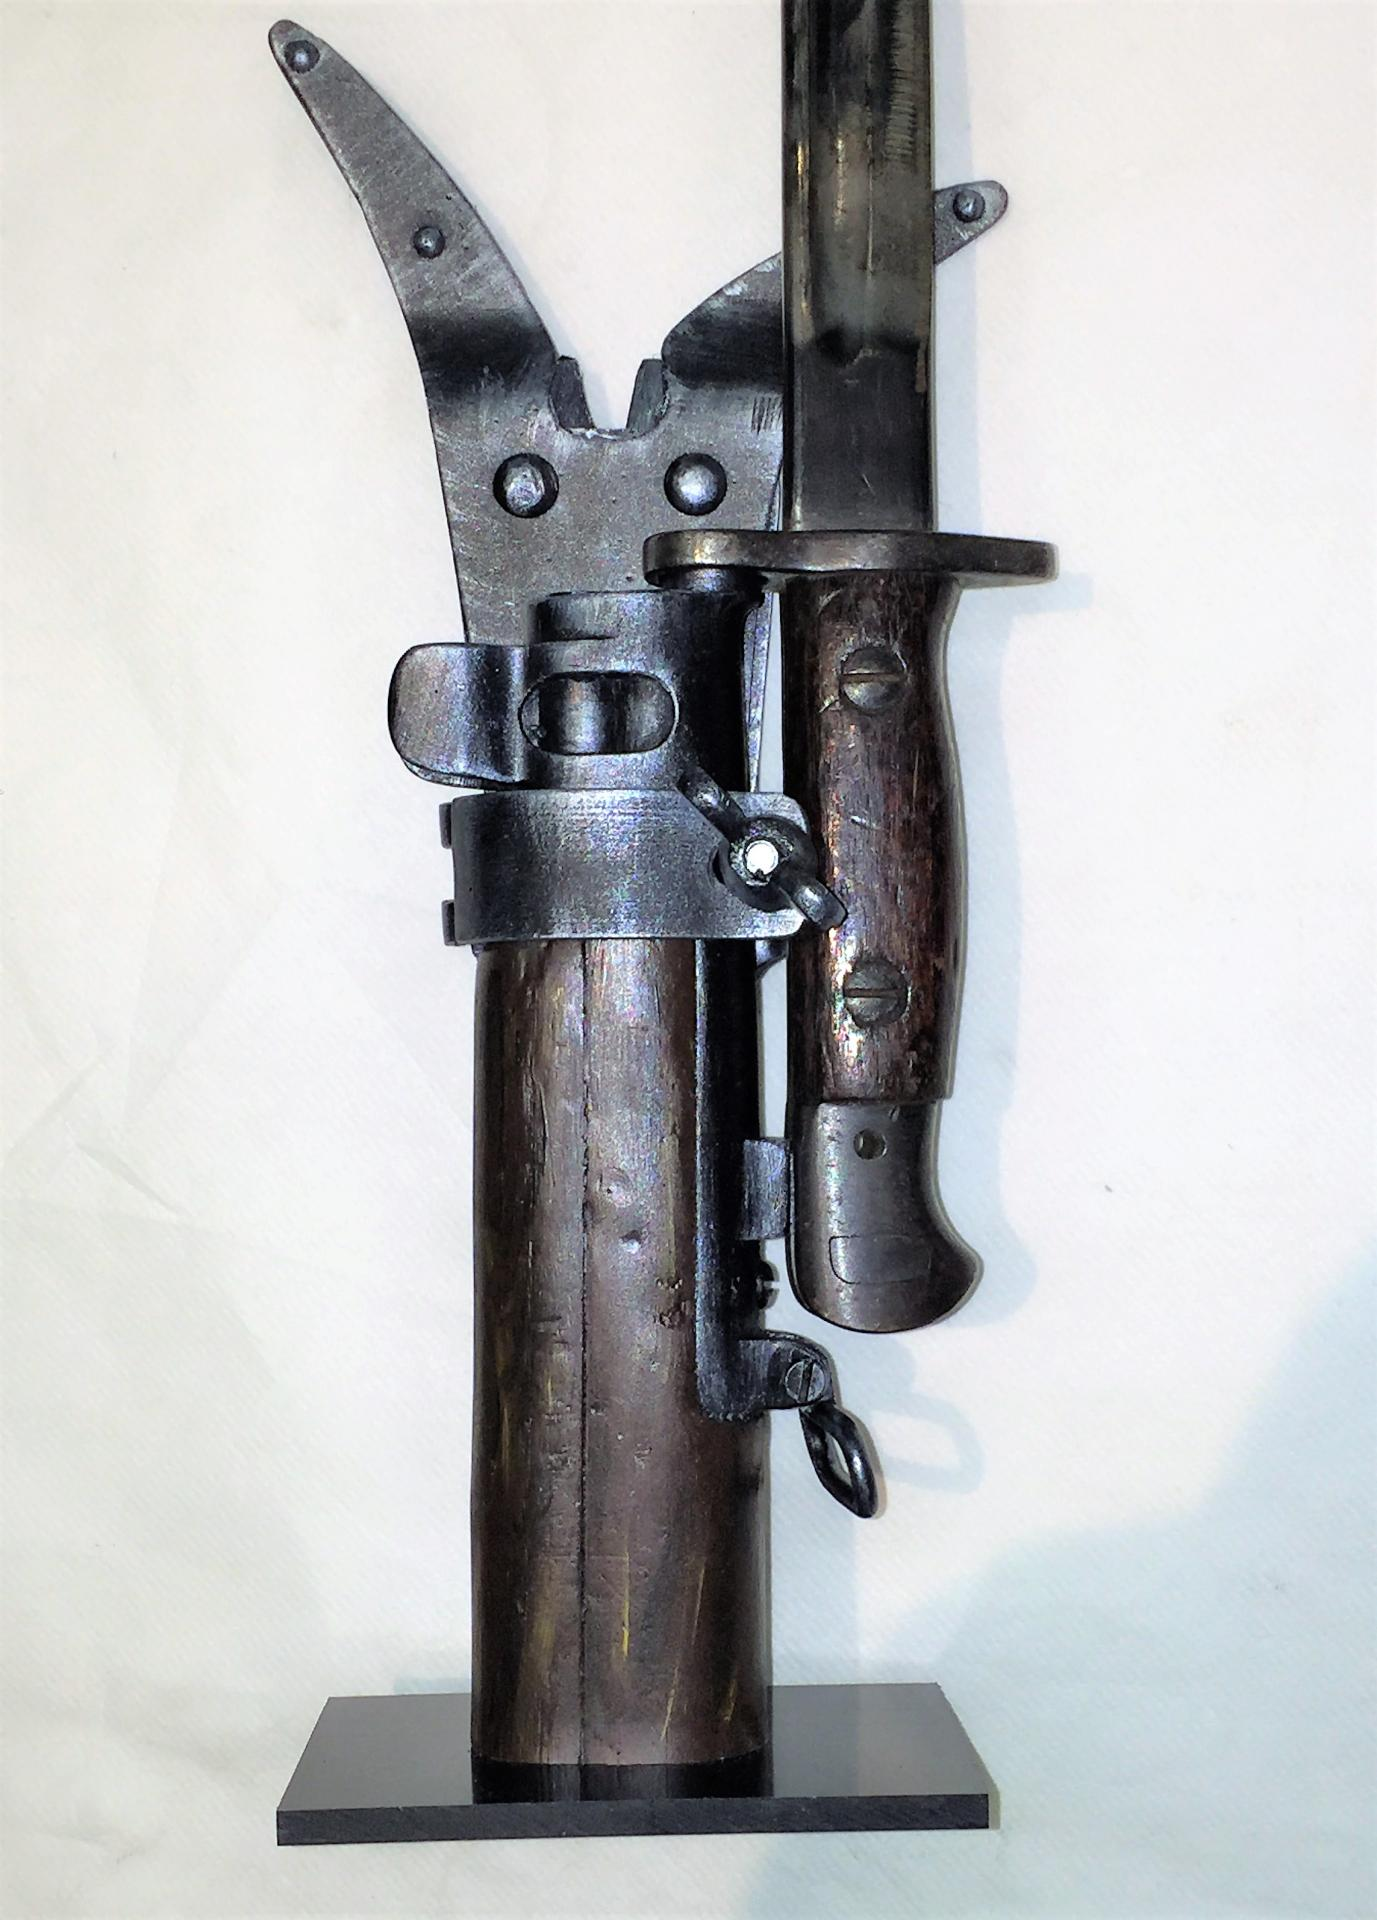 Enfield n°1 Mk3 with wire cutter